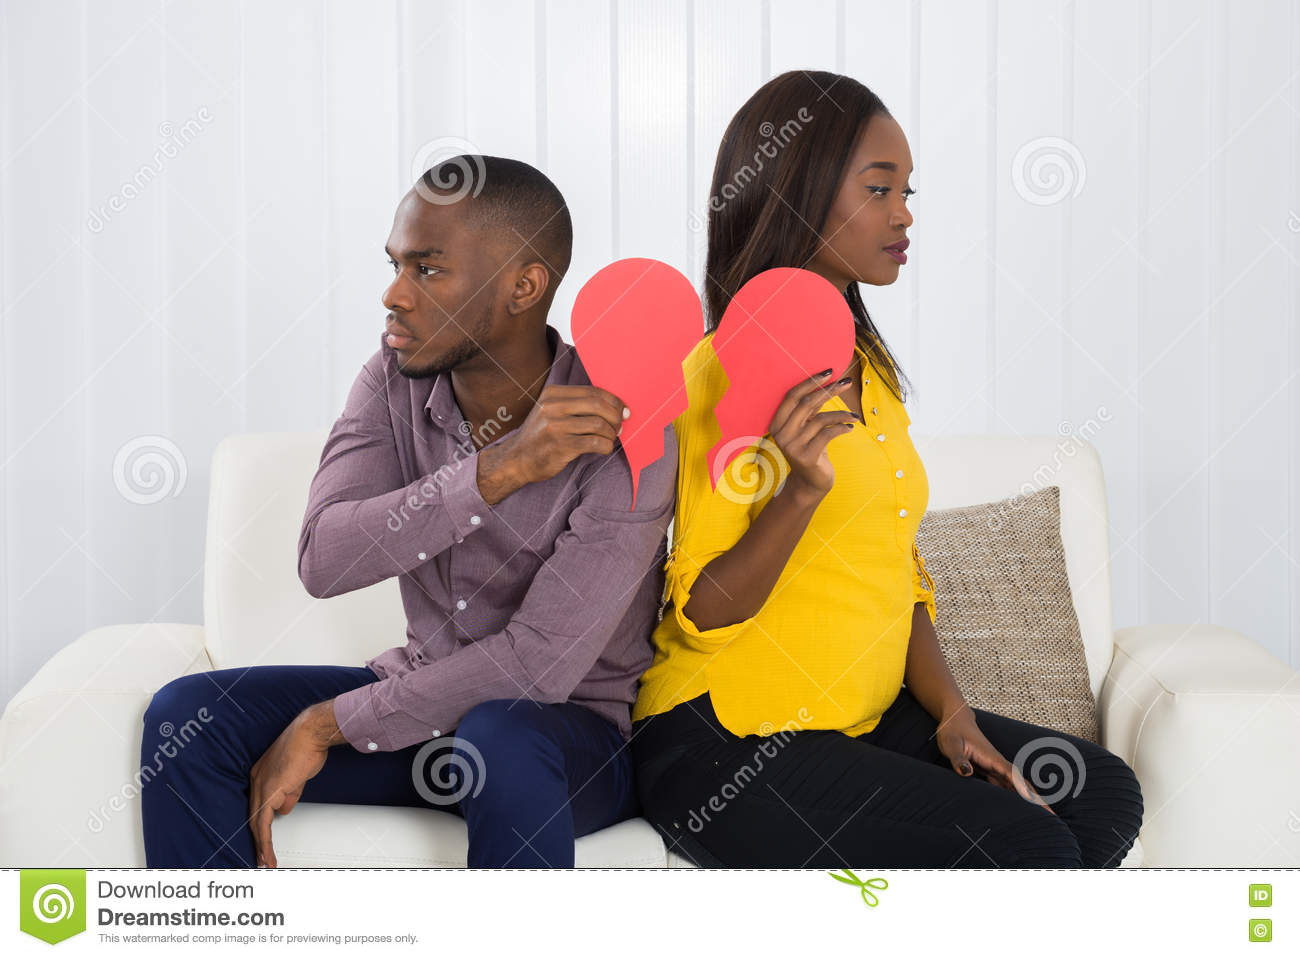 Download Sad Couple Holding Red Broken Heart Stock Photo - Image of broken, separation: 74153636